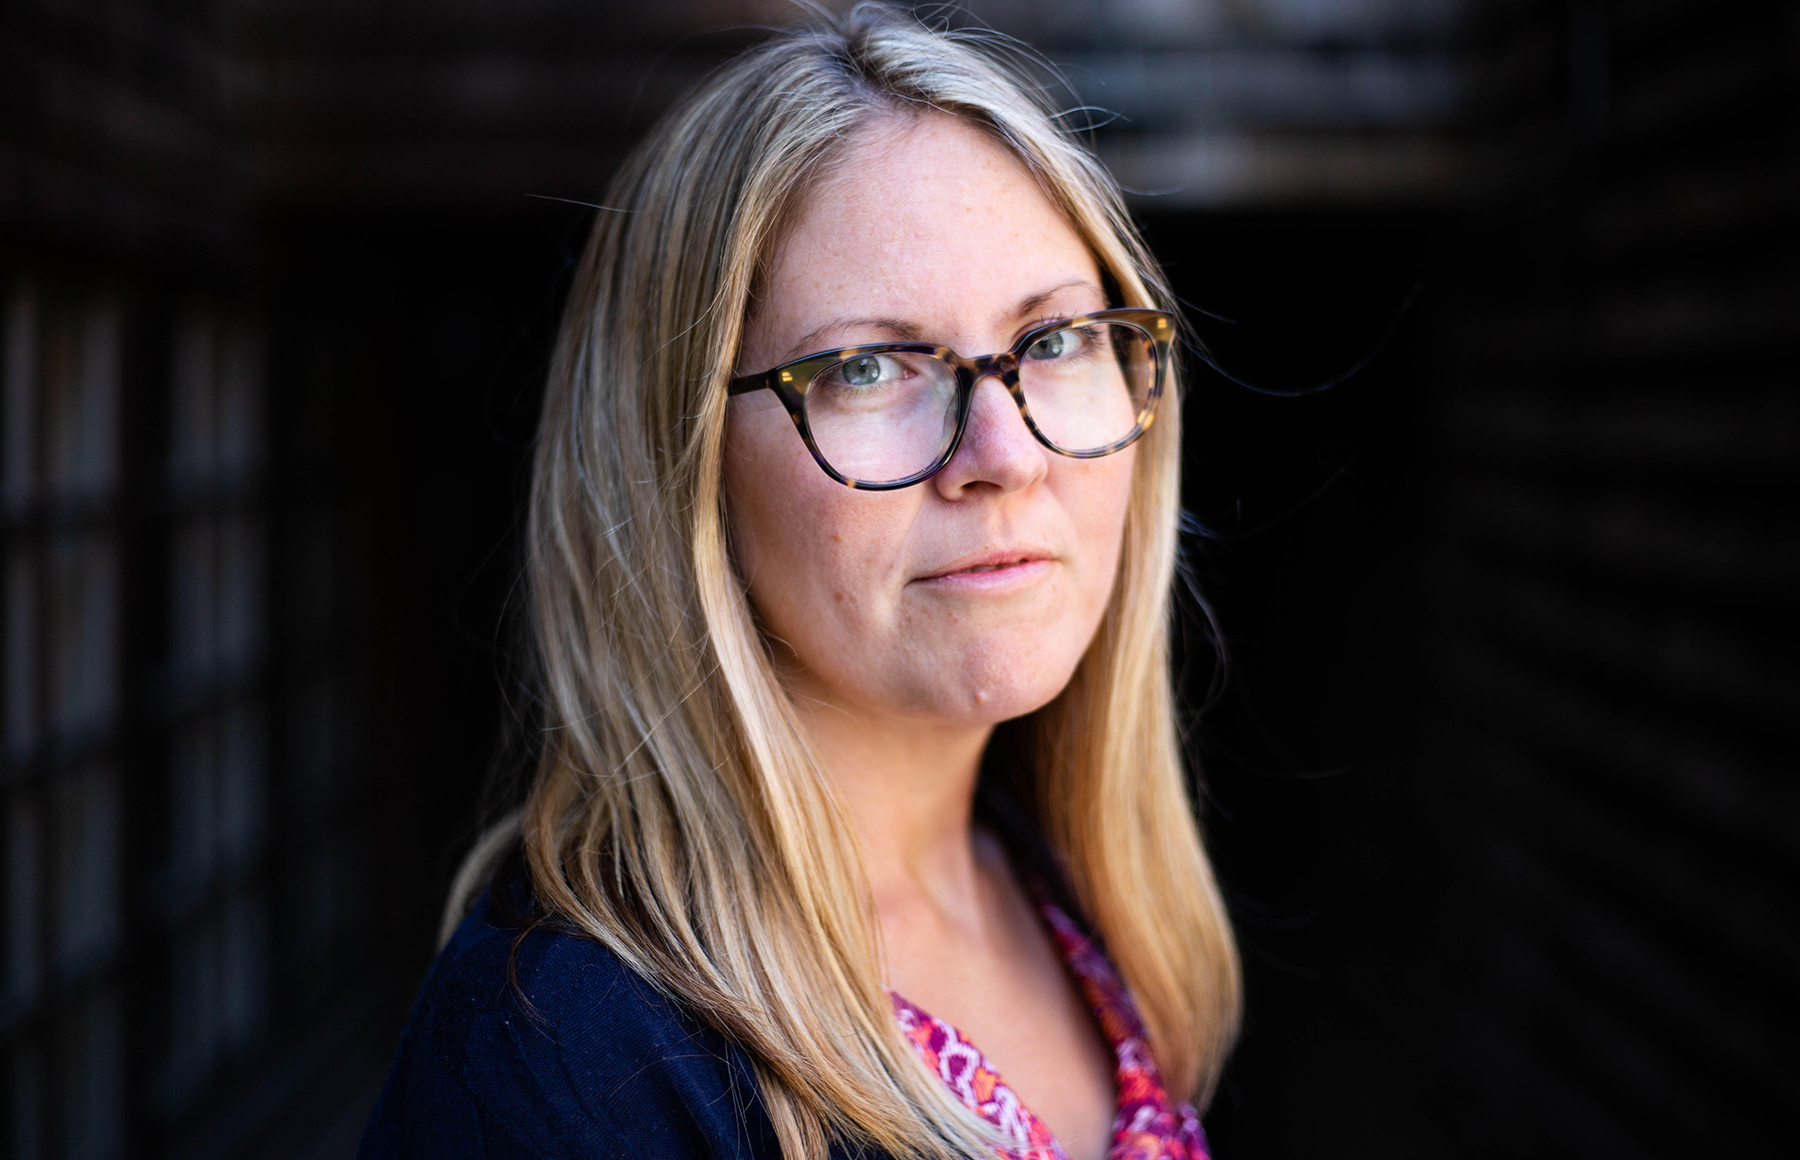 UC Berkeley School of Law alumna wins Pulitzer Prize for national reporting